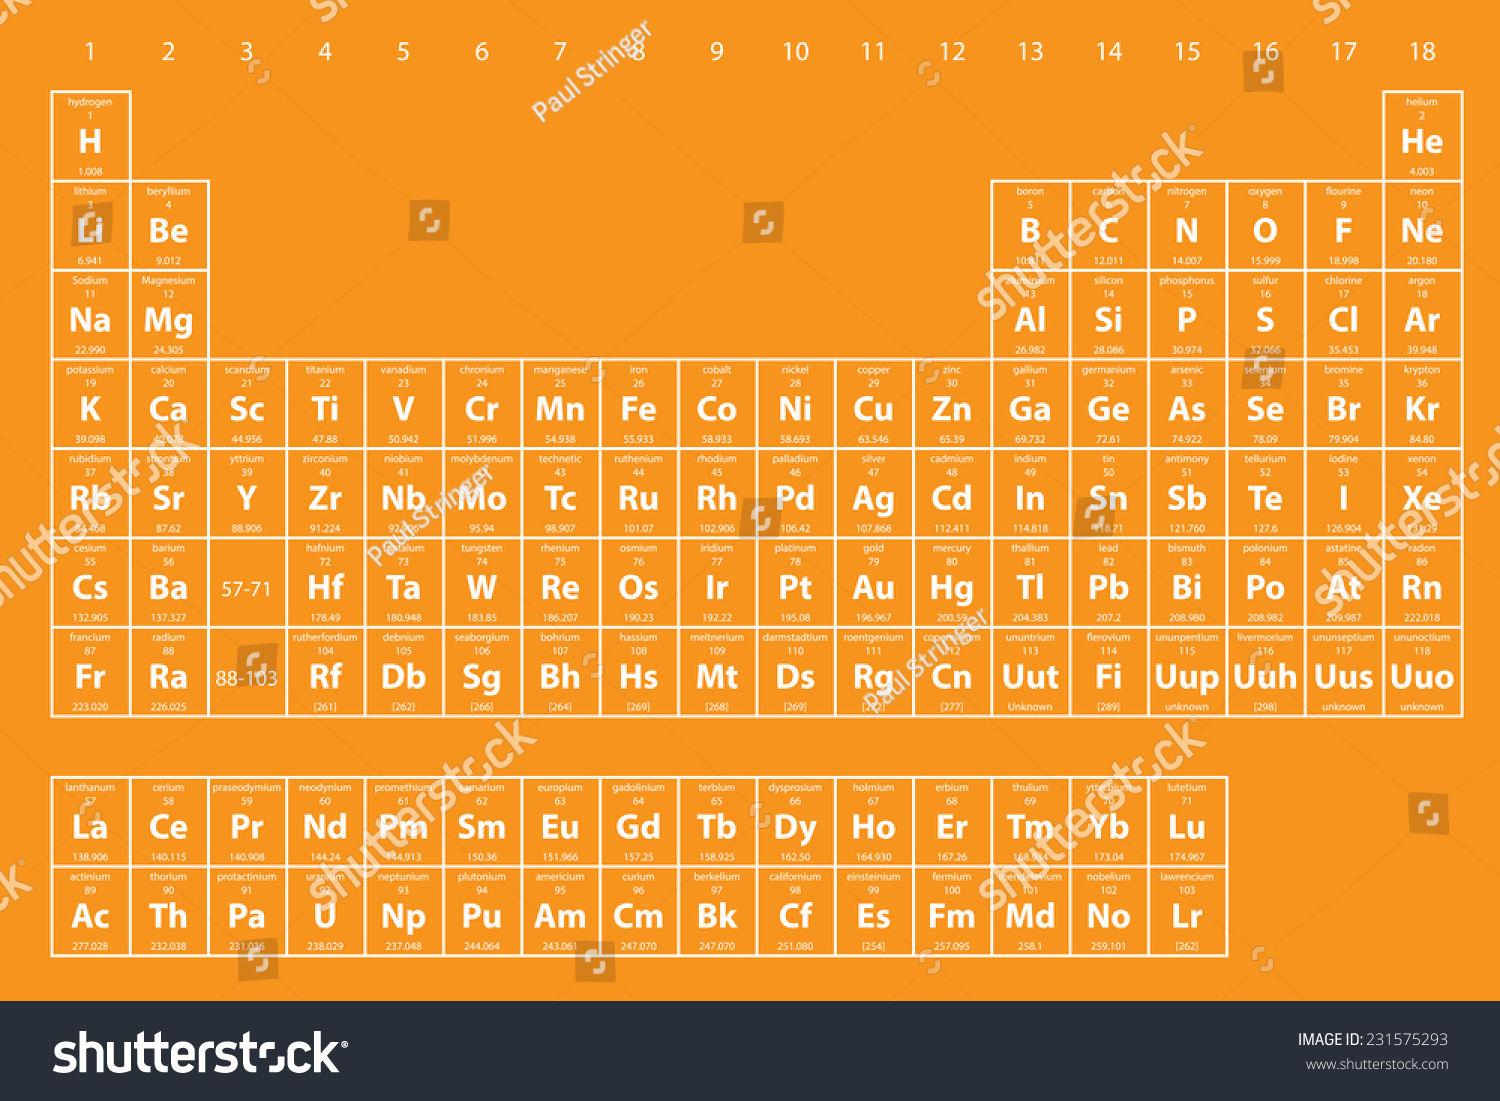 Periodic table rap song image collections periodic table images periodic table solid liquid gas image collections periodic table periodic table of eleme gallery periodic table gamestrikefo Choice Image